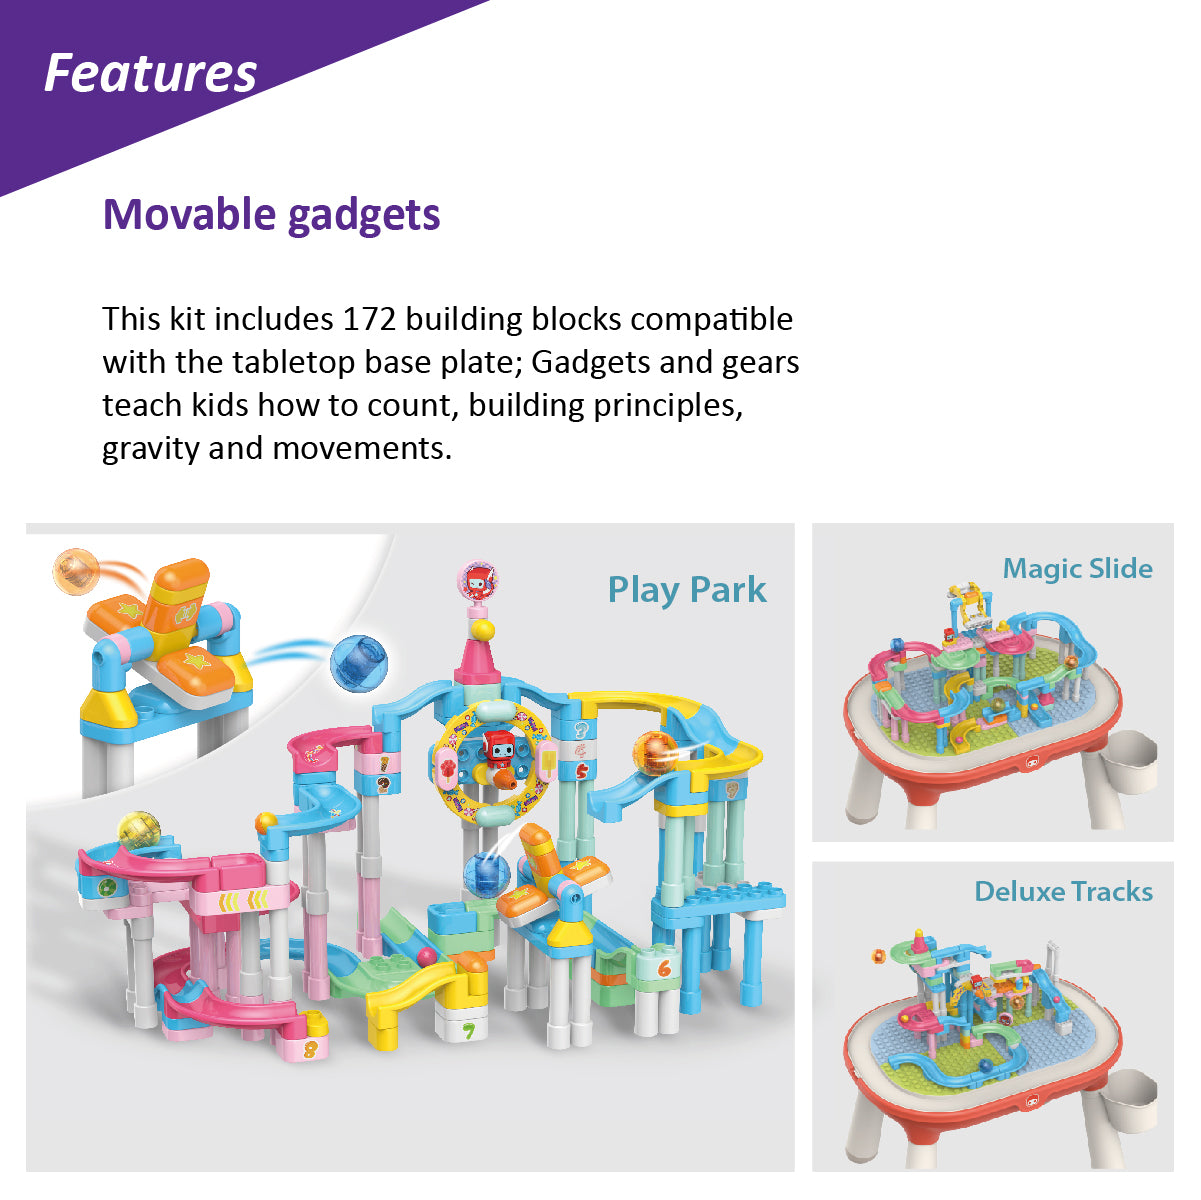 Movable gadgets & gears (This kit includes 172 building blocks compatible with the tabletop base plate; Gadgets and gears teach kids how to count, building principles, gravity and movements.)